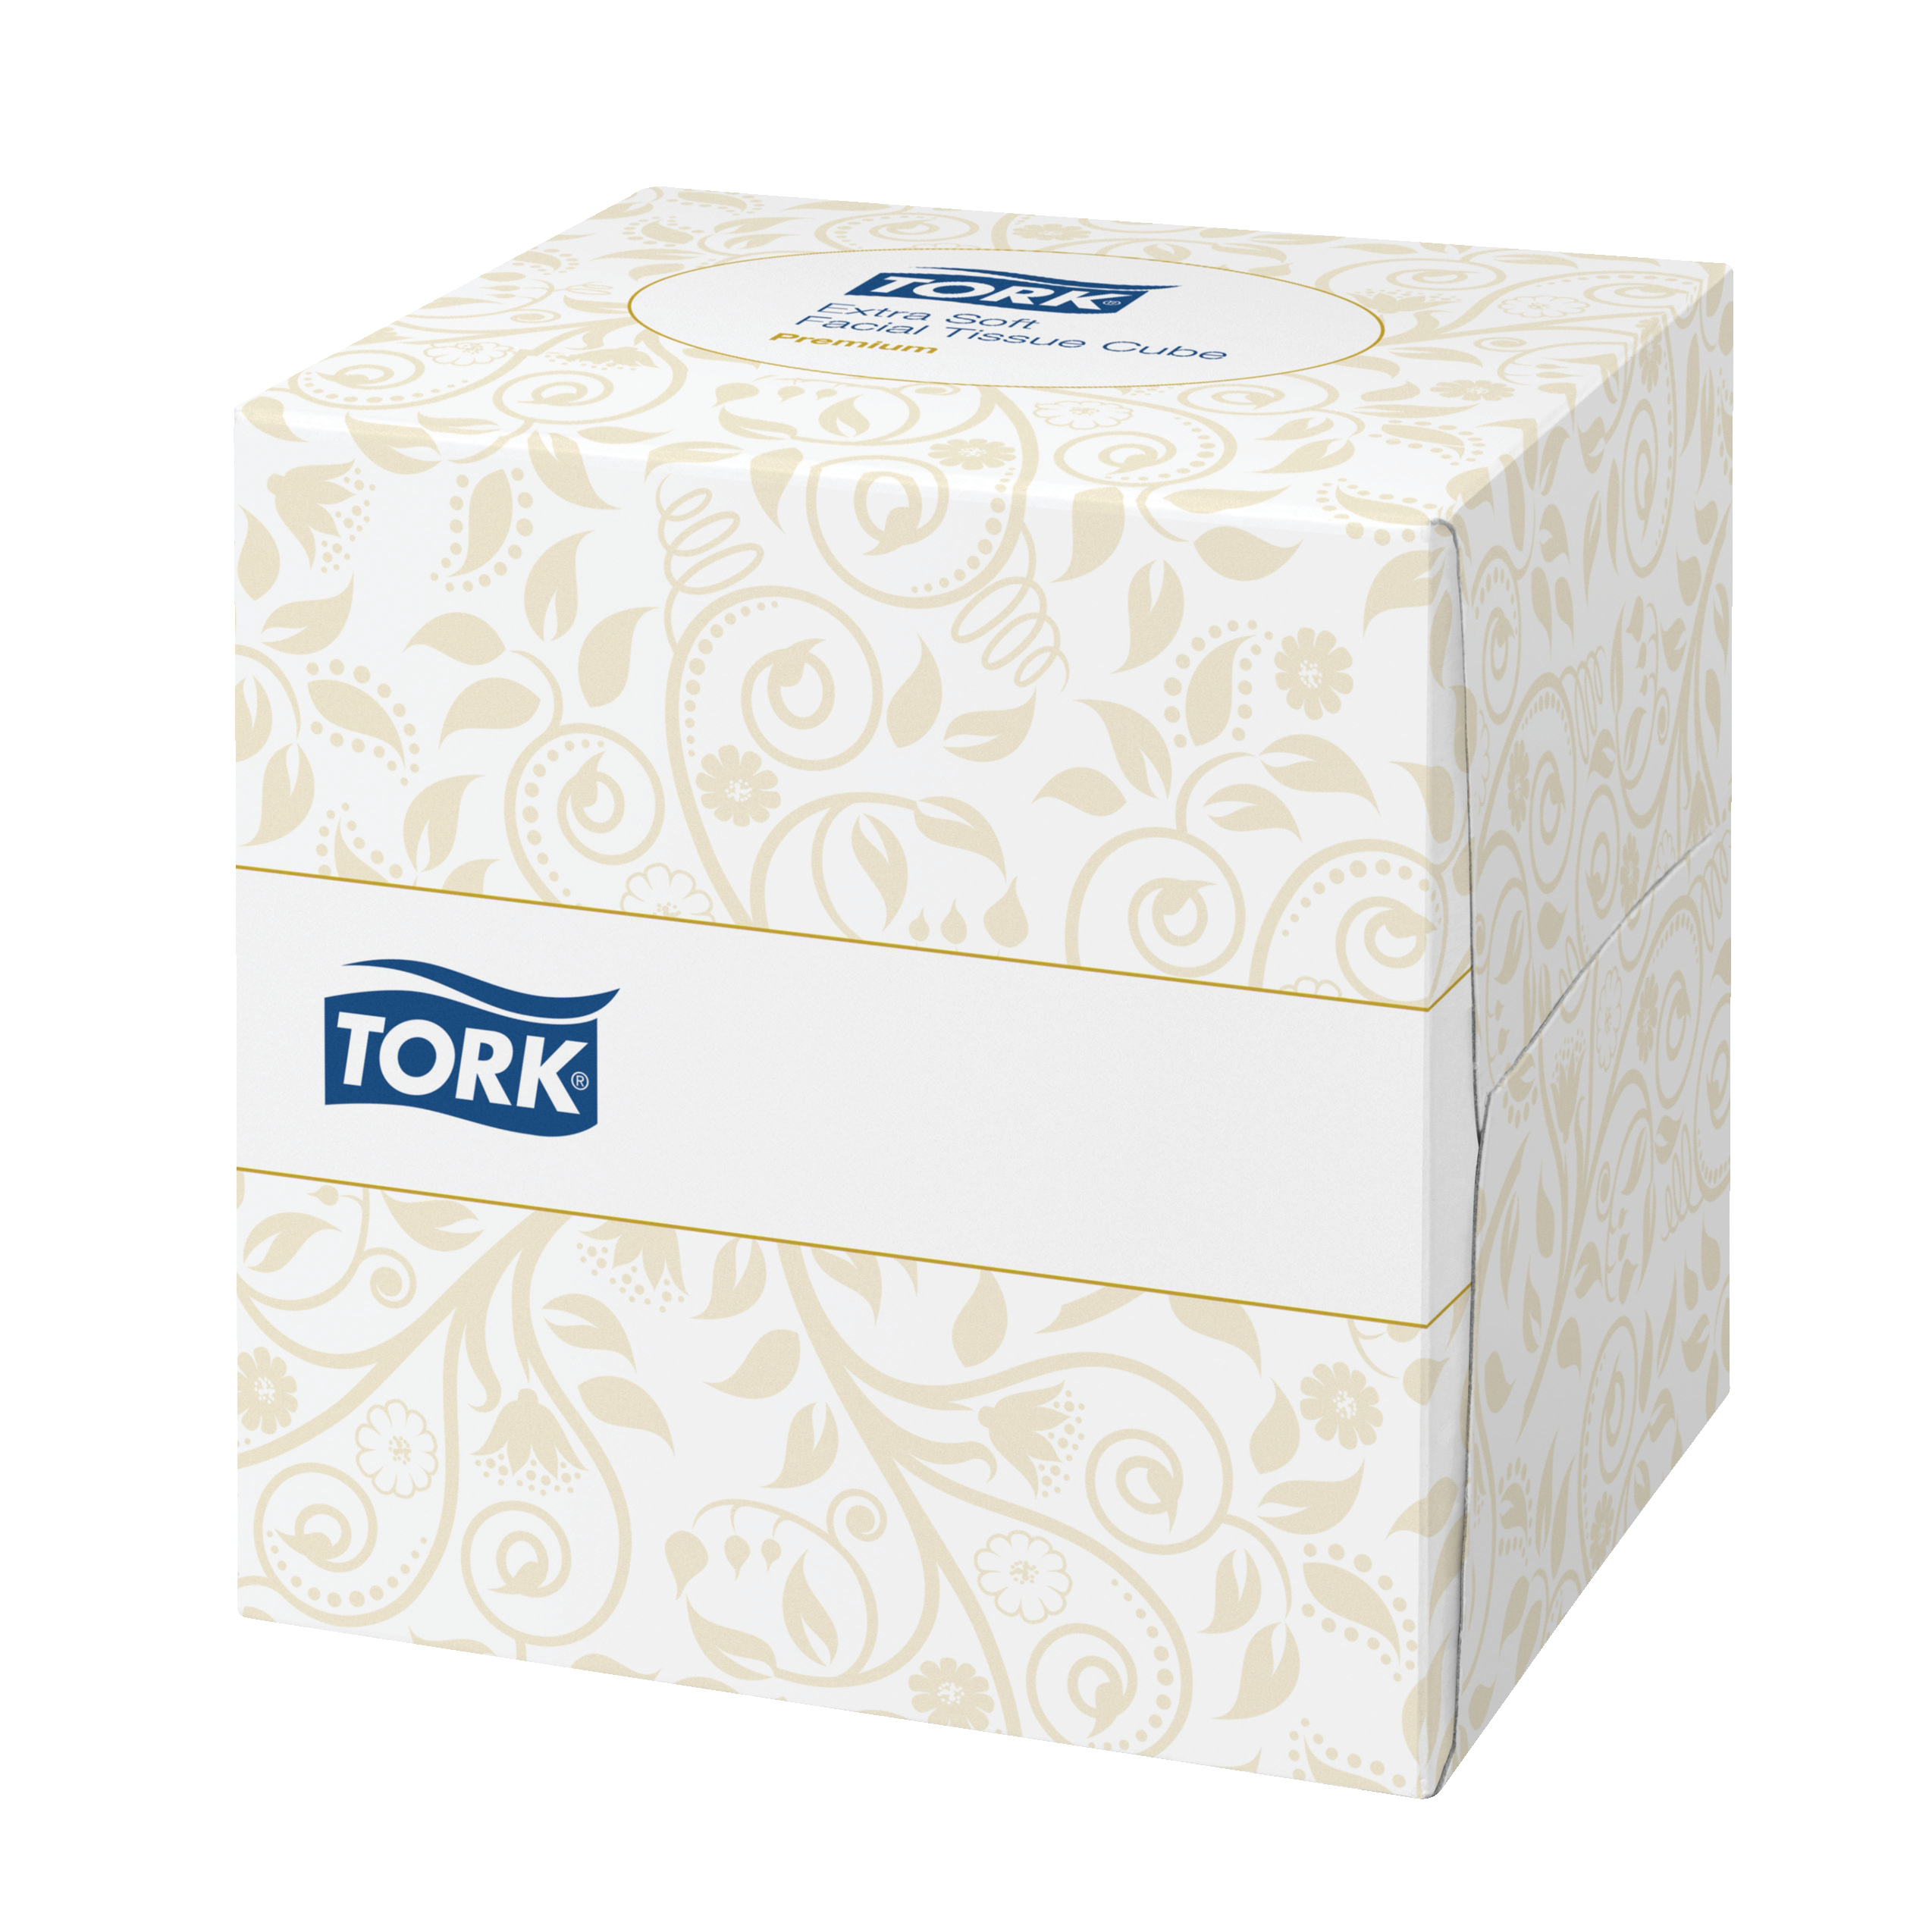 Tork Facial Tissues Cube 2 Ply 100 Sheets White Ref 140278 Pack 30